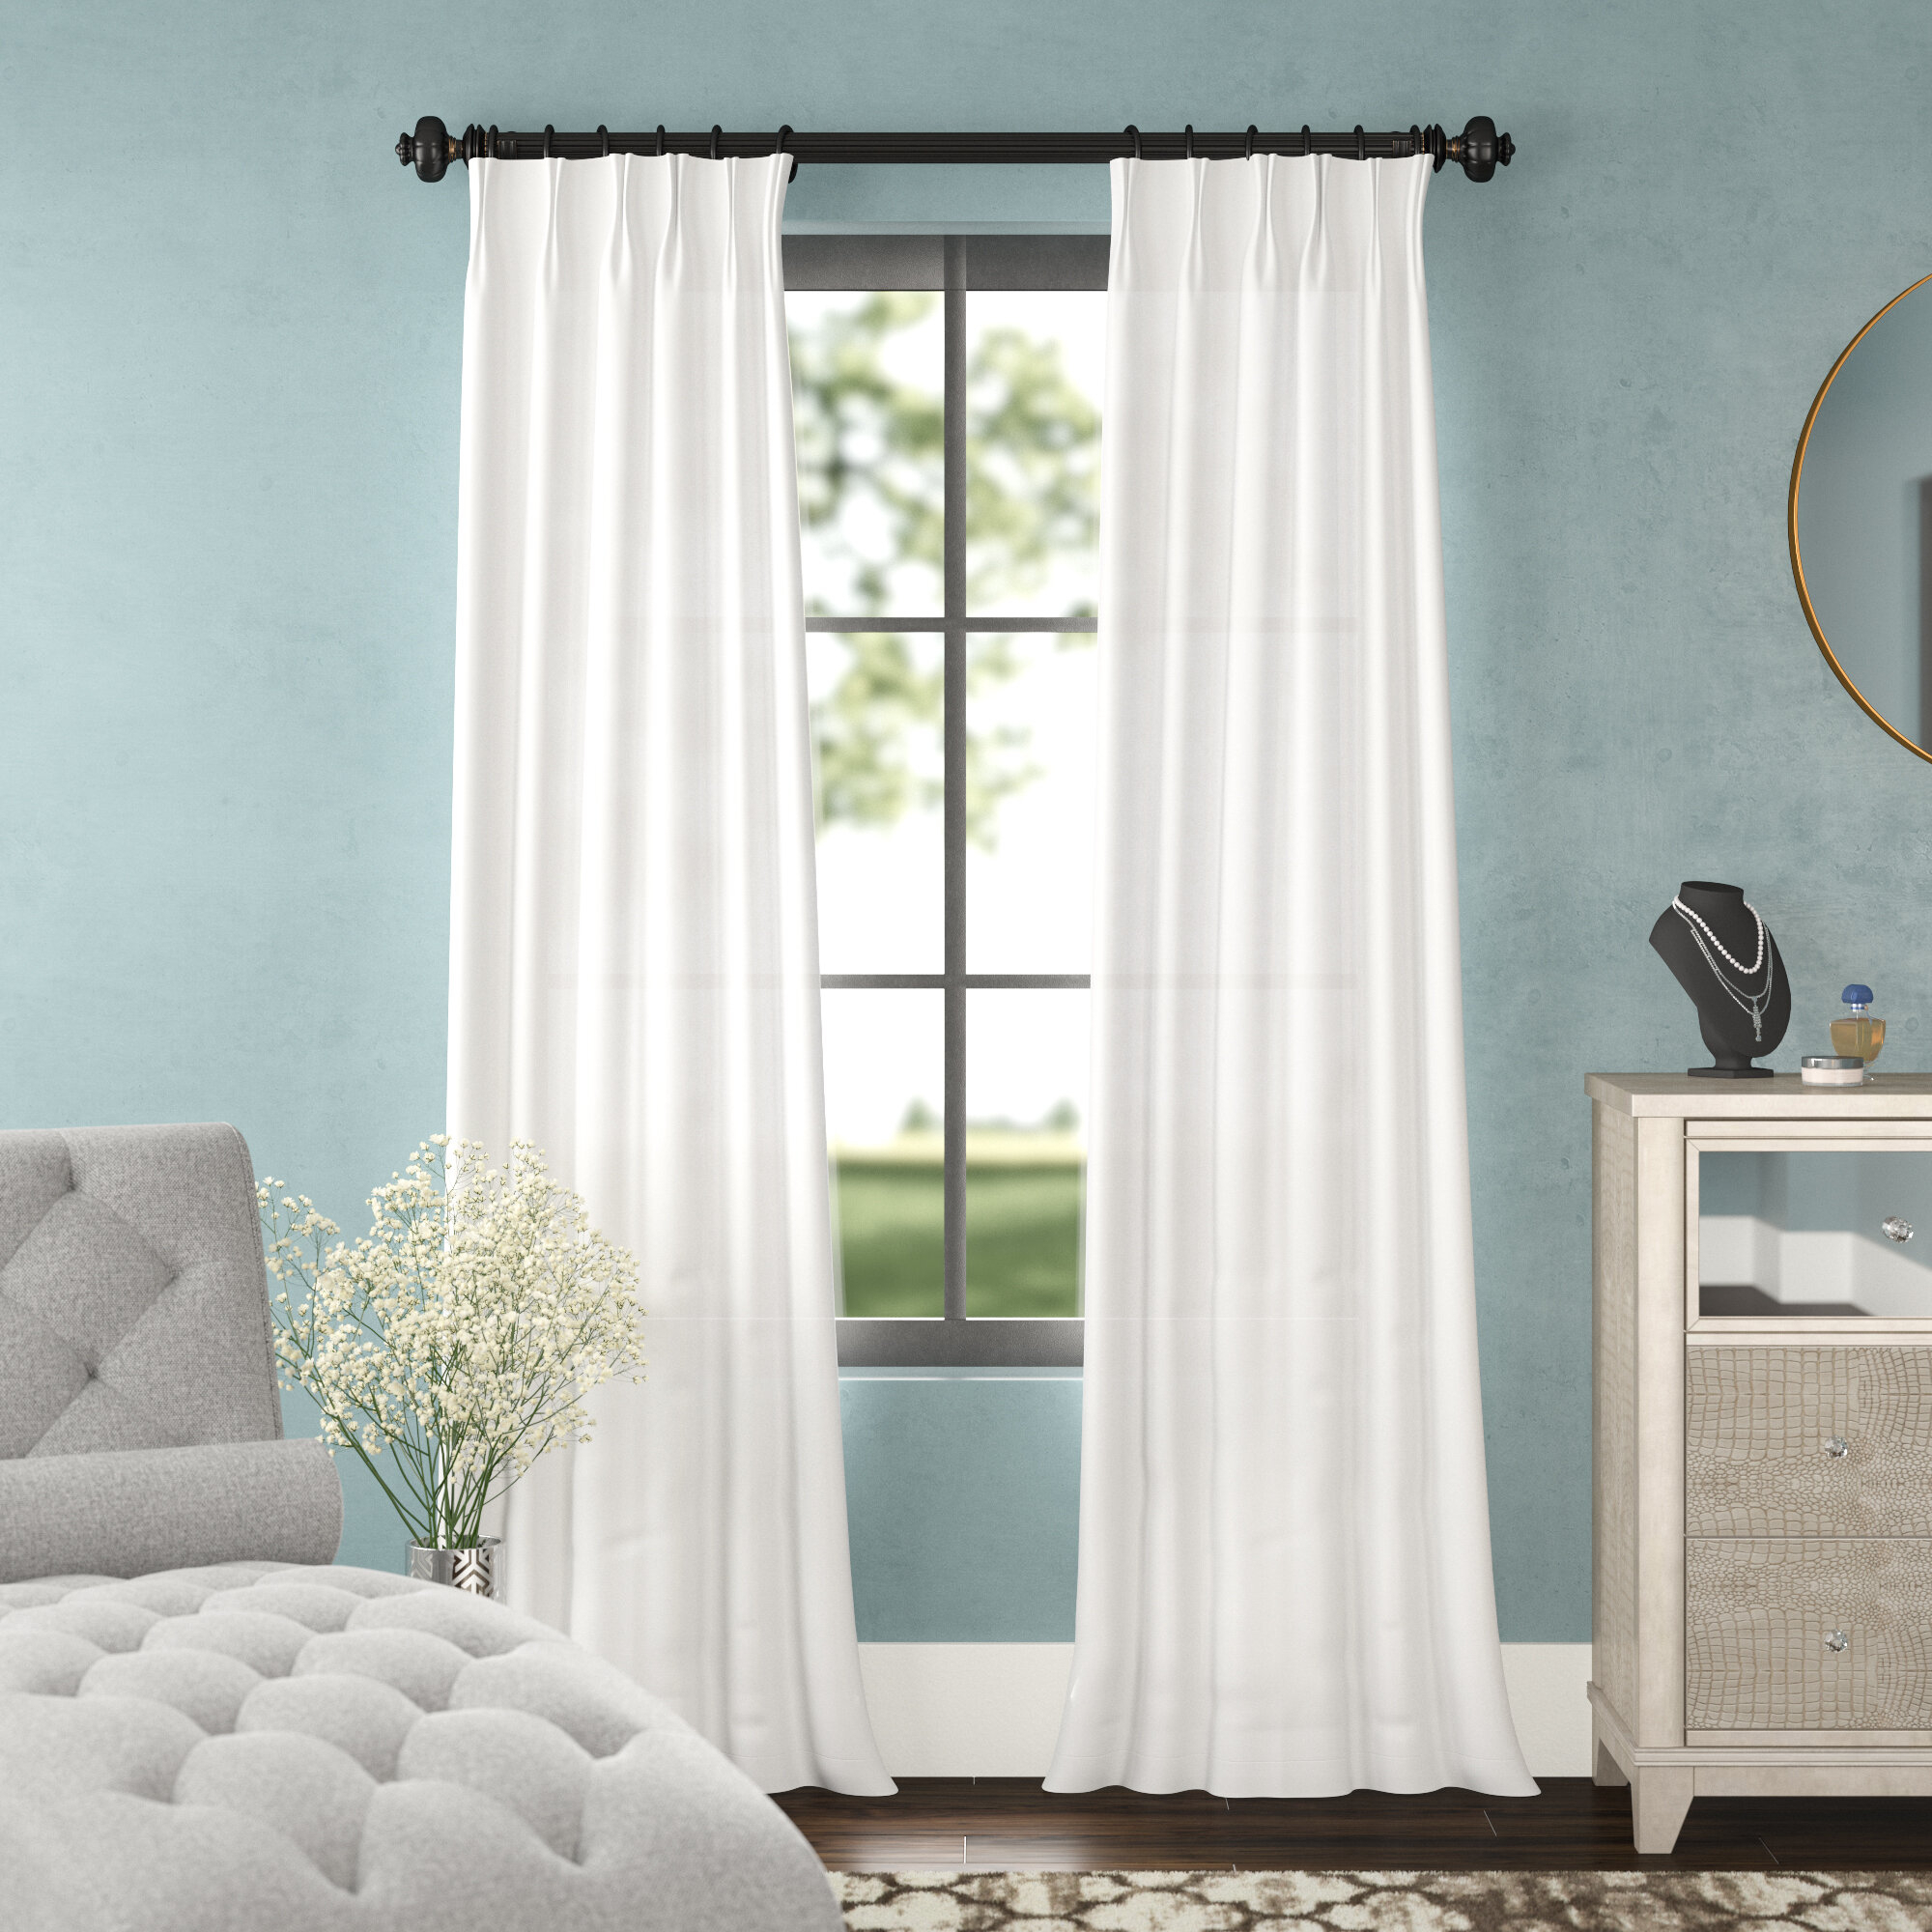 Forbell Solid Blackout Vintage Textured Faux Dupioni Thermal Pinch Pleat Single Curtain Panel Within Silver Vintage Faux Textured Silk Curtain Panels (View 25 of 30)